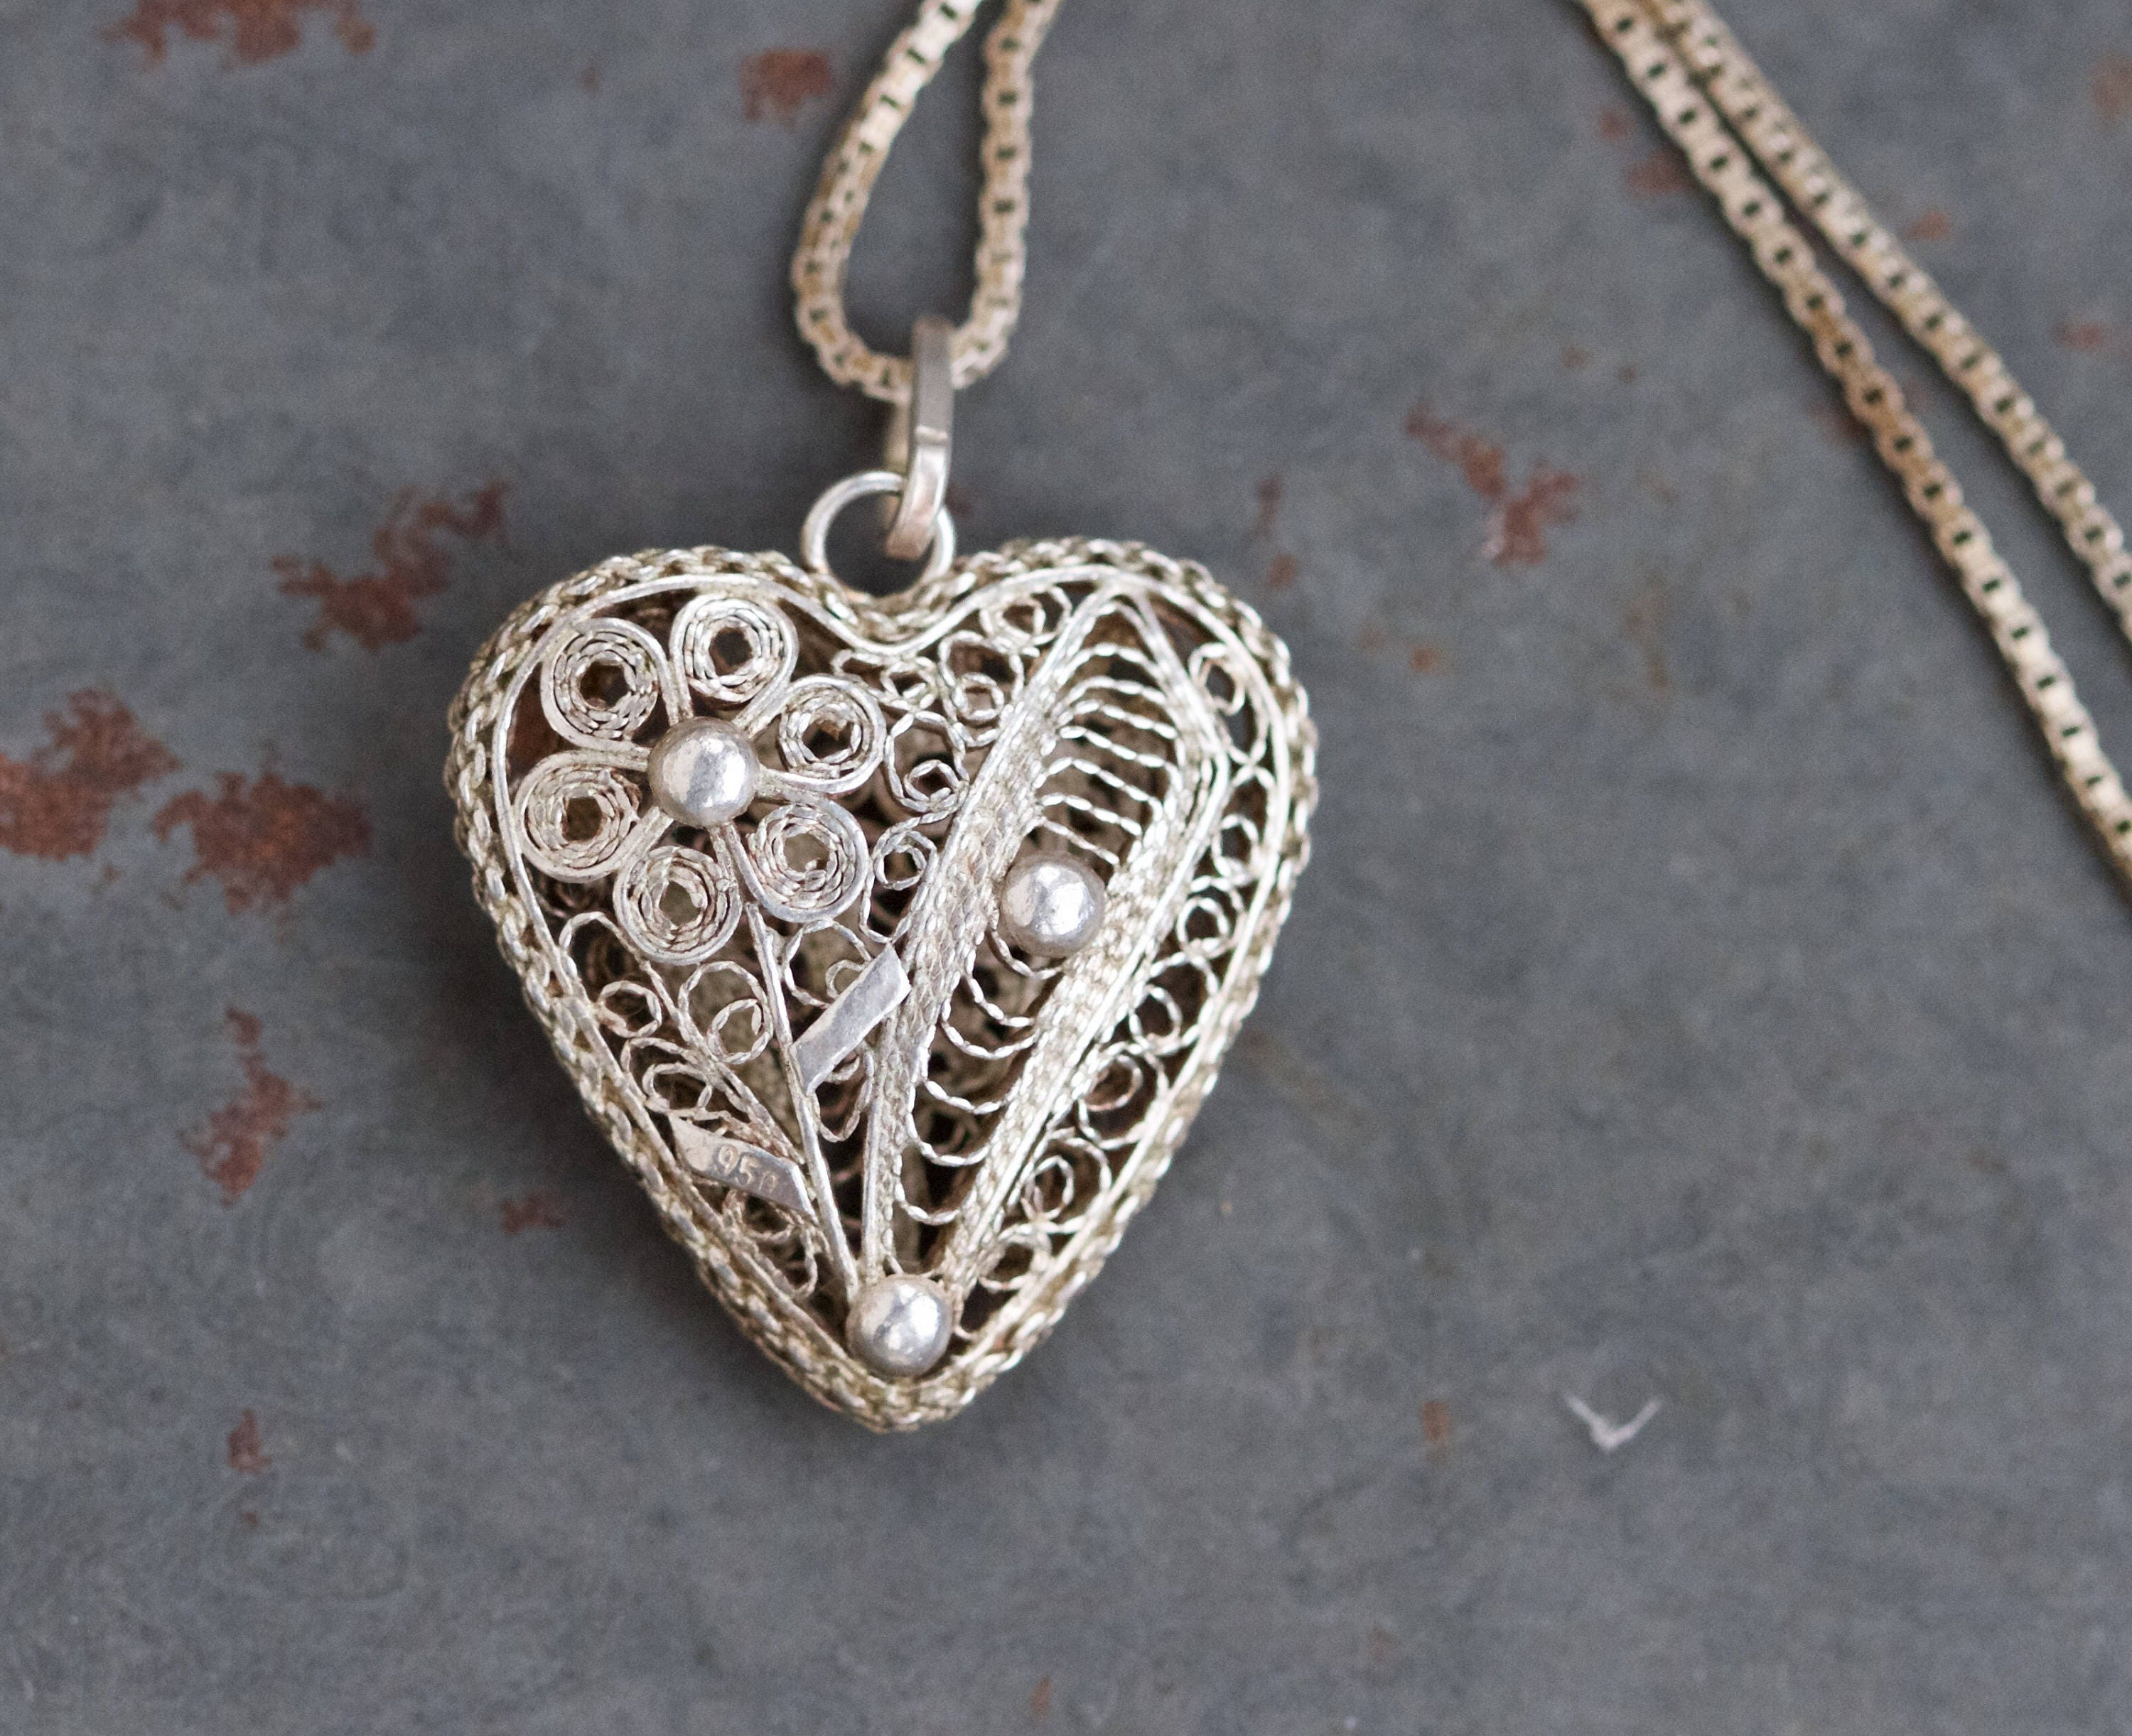 Filigree Heart Necklace  Sterling Silver Vintage Love Pendant on Chain